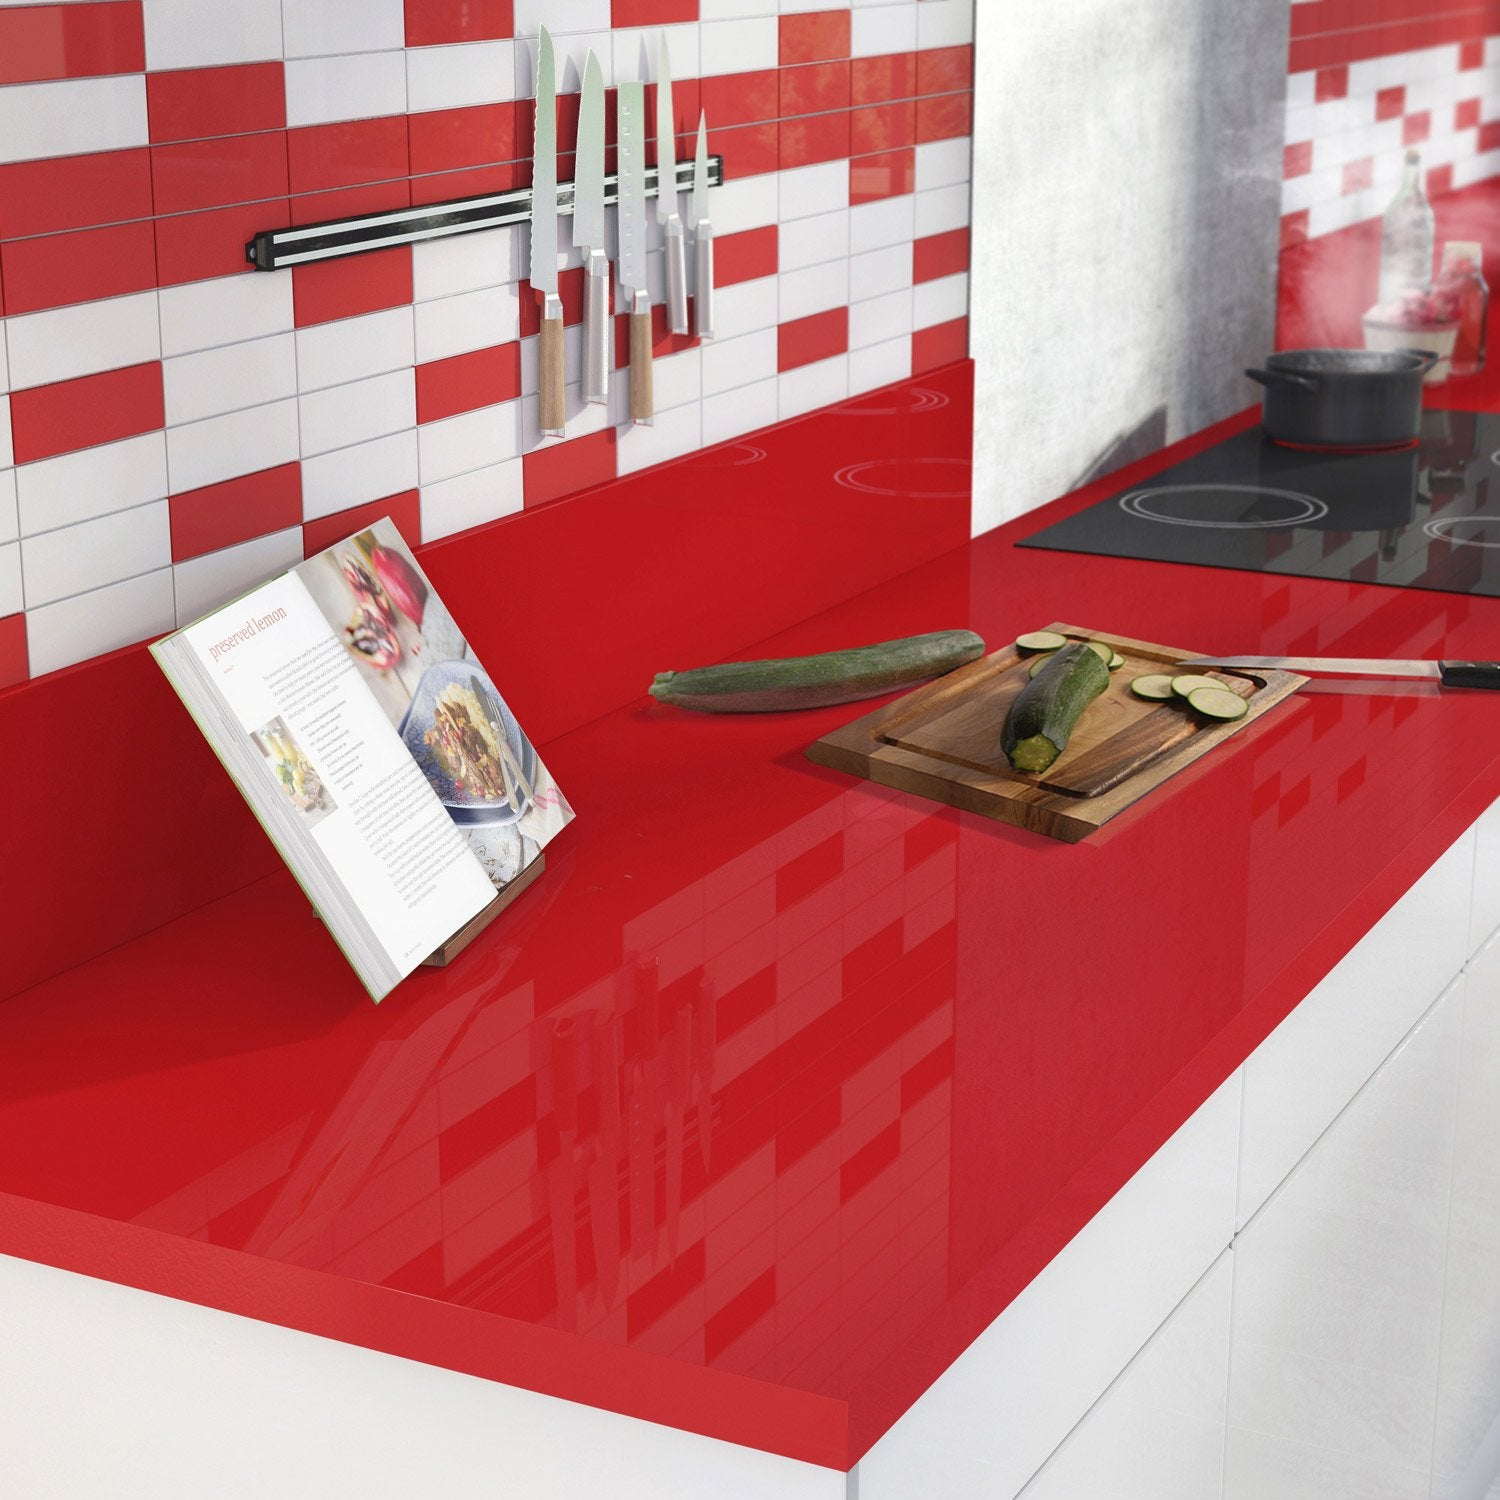 Plan de travail stratifi rouge rouge 3 brillant x p for Plan de cuisine stratifie